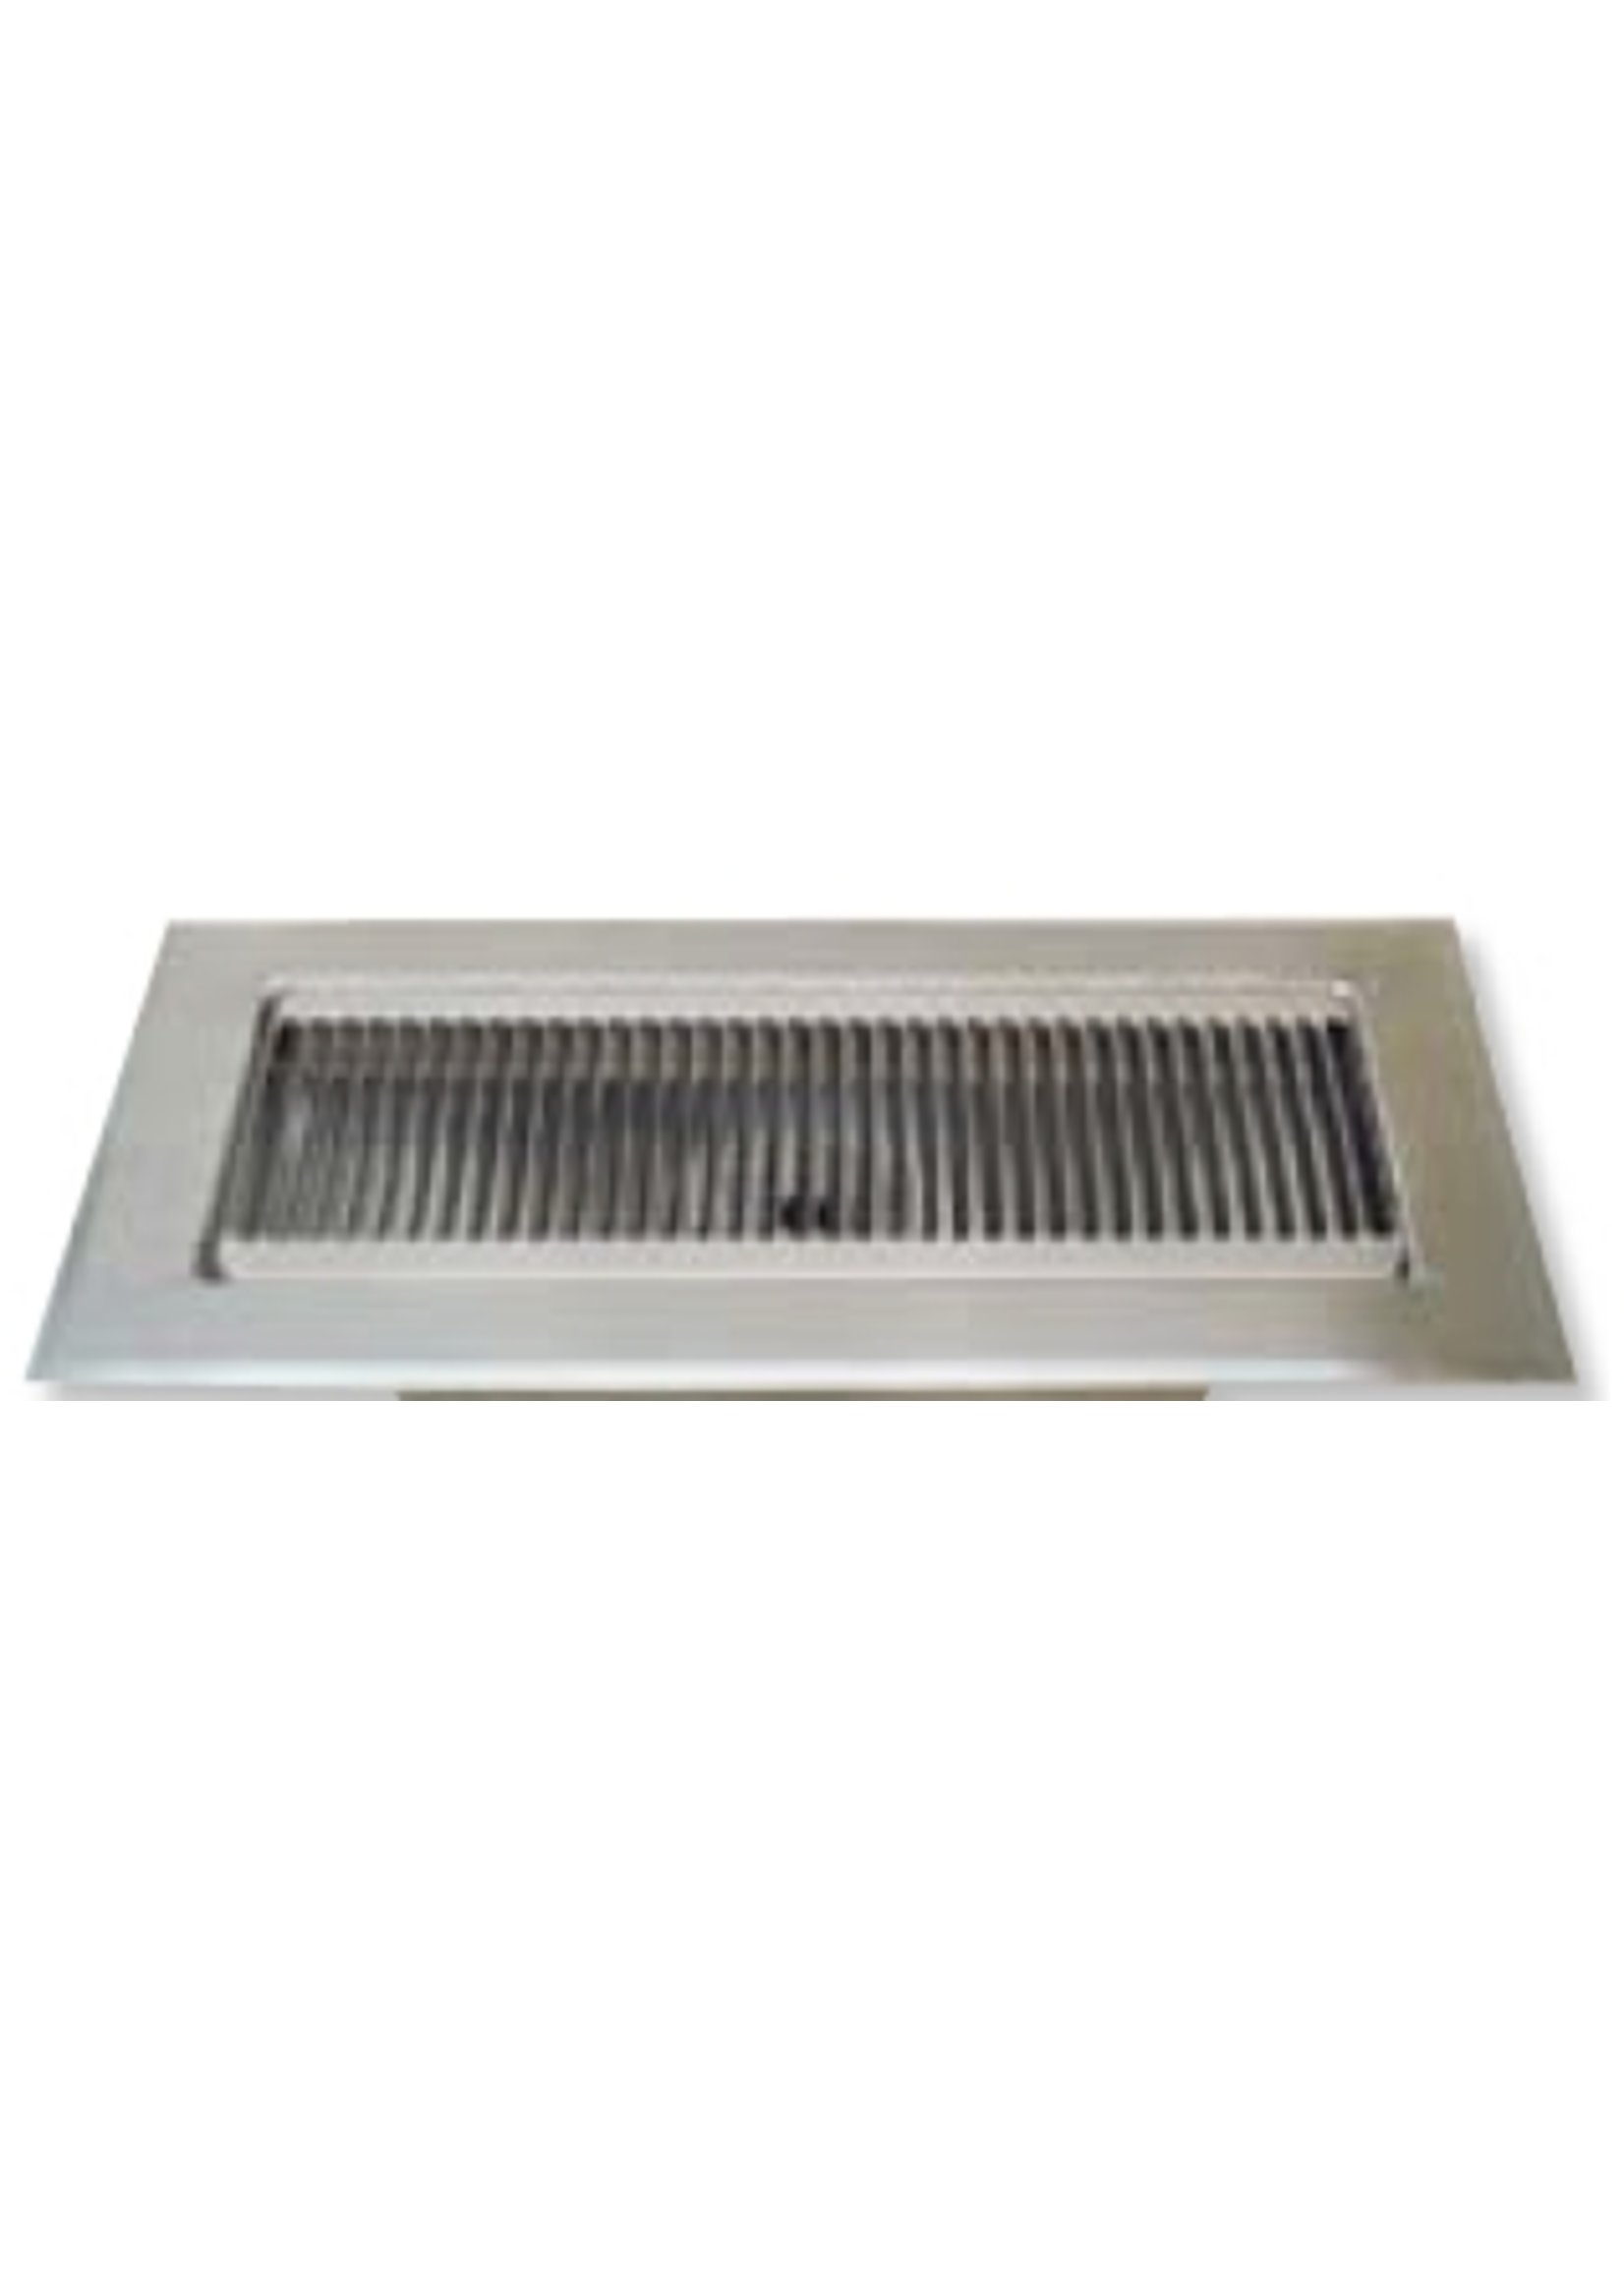 """Kegging Flush Mount Stainless Steel Drip Tray - 12"""" x 5.25"""" x 1.5"""" Flanged"""